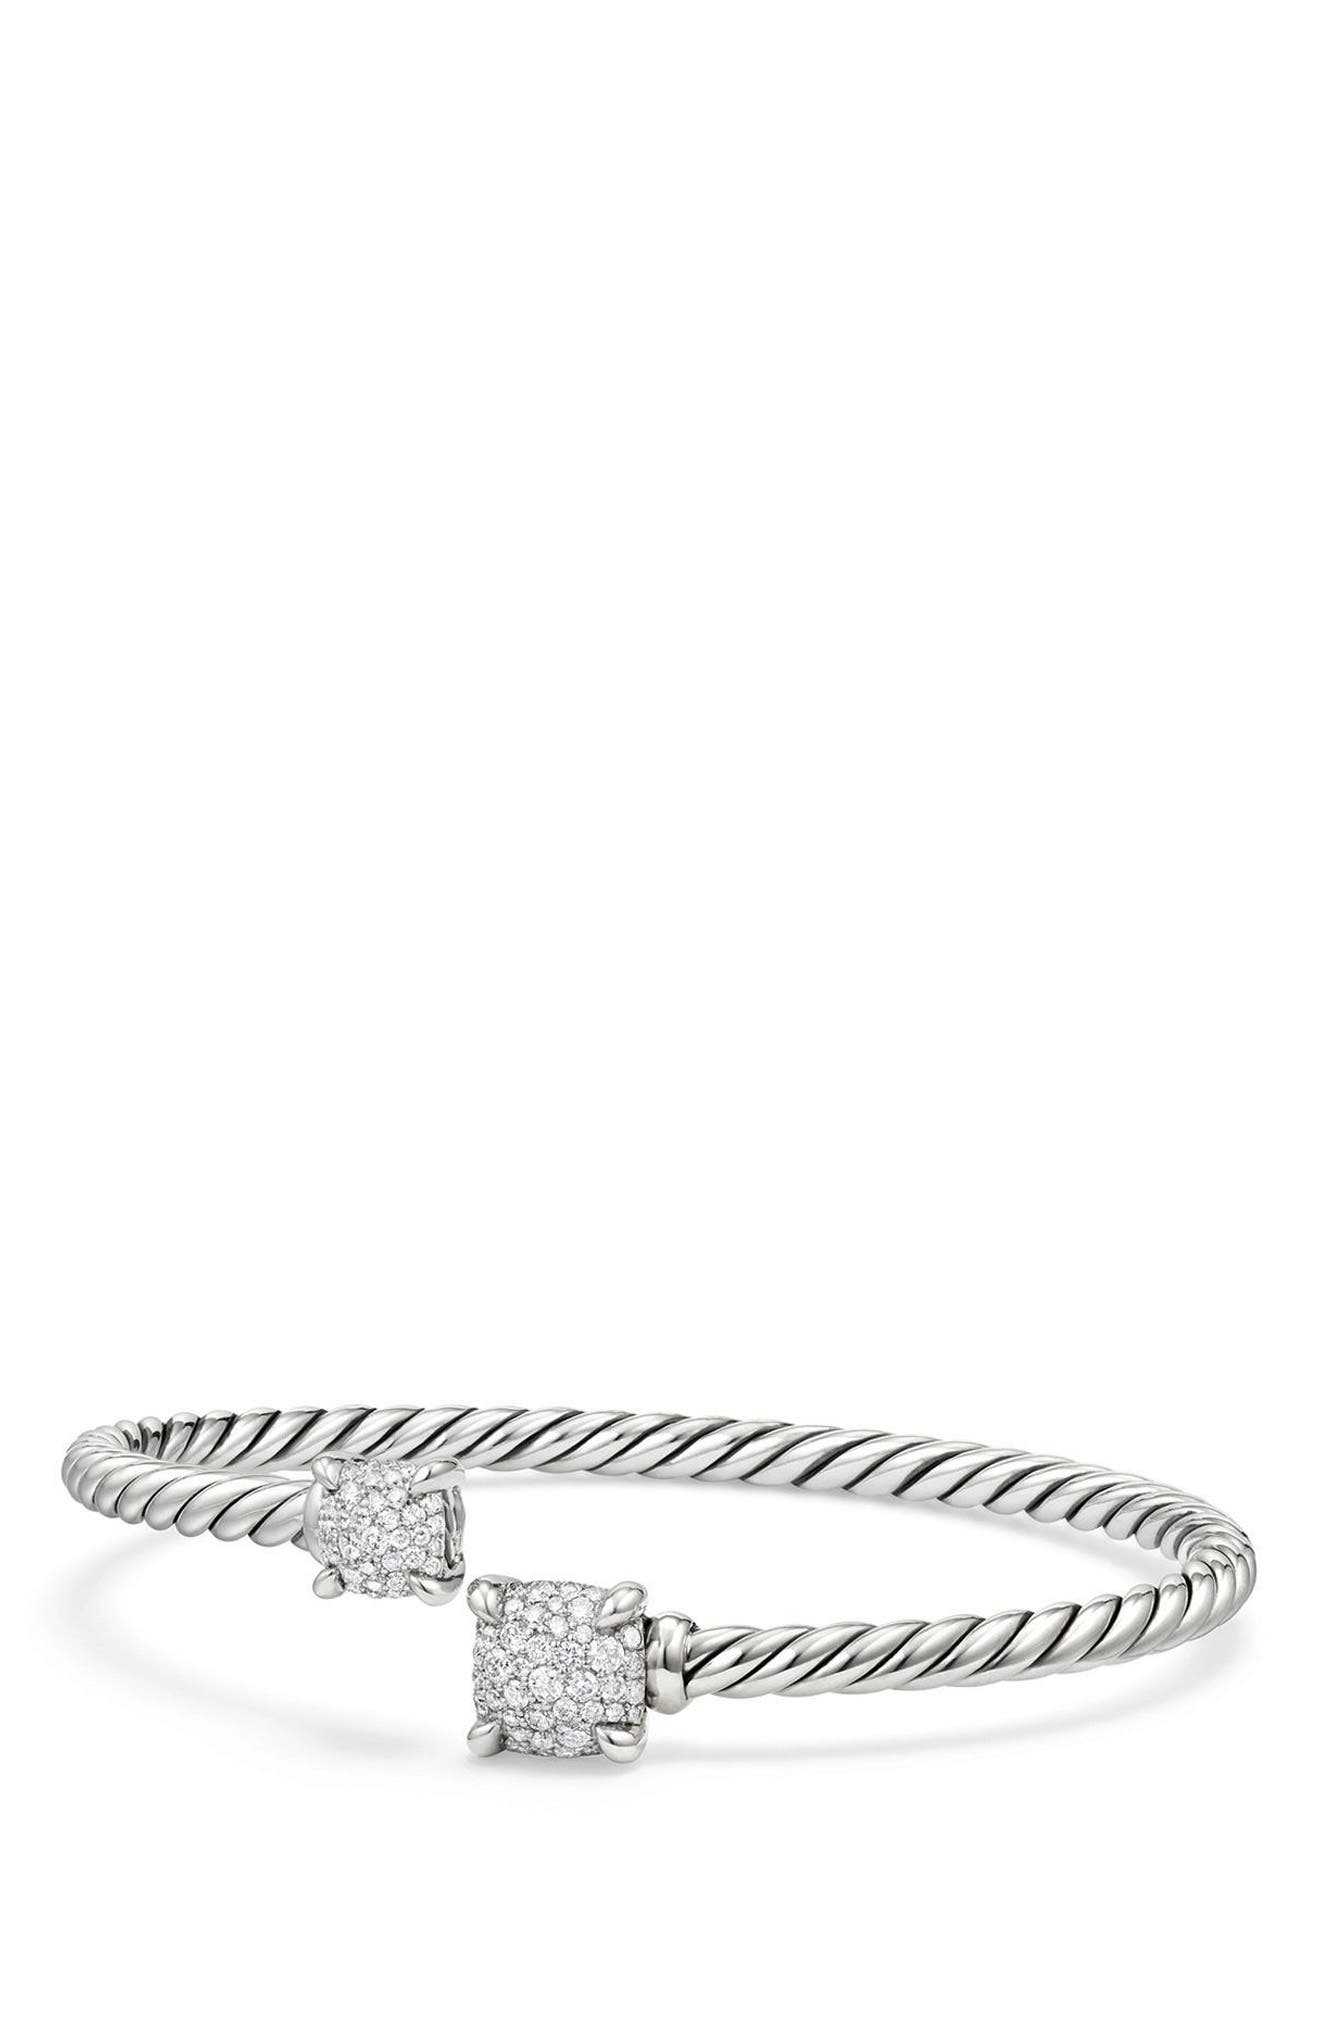 Châtelaine Bypass Bracelet with Diamonds,                         Main,                         color, SILVER